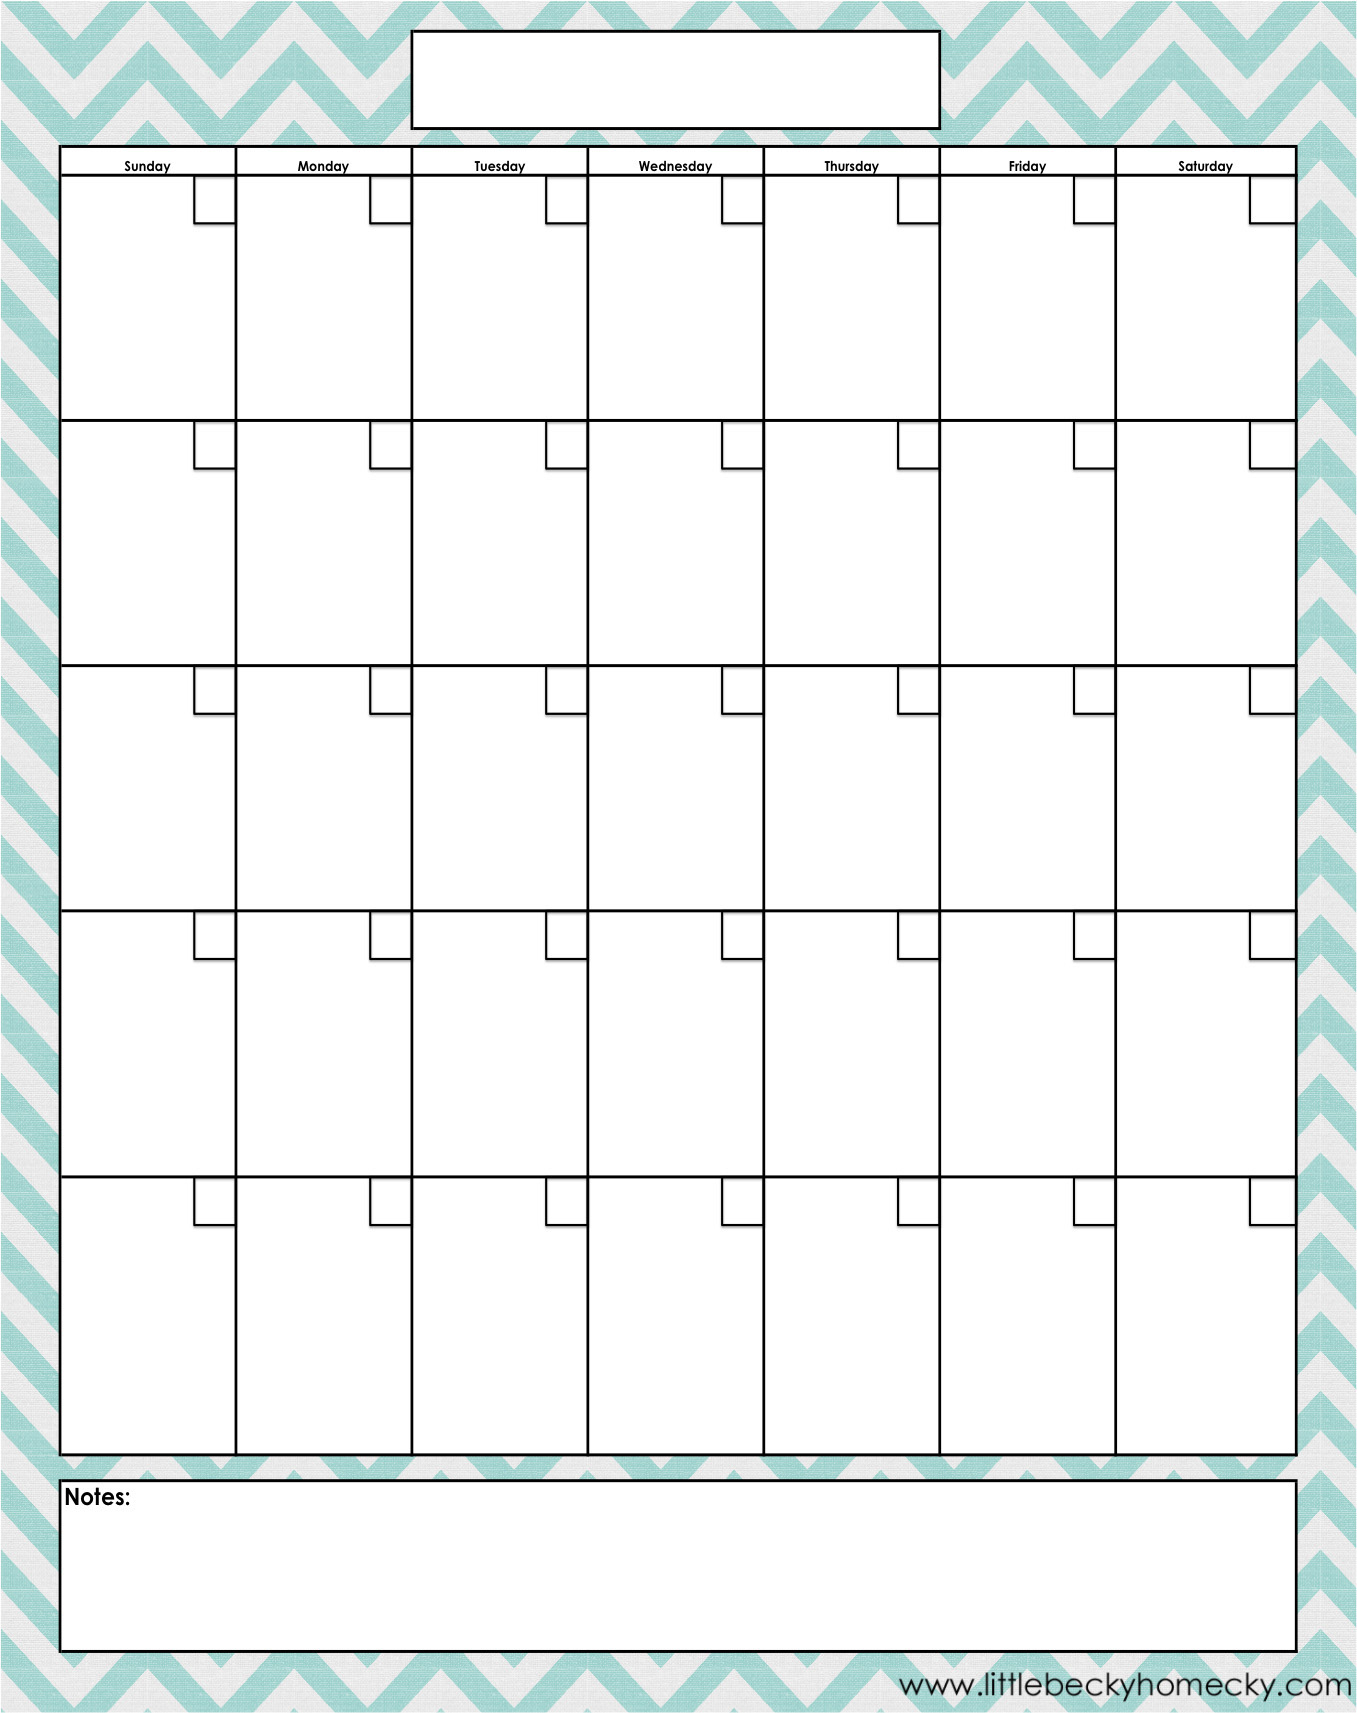 Blank-Monthly-Calendar-Printable-Pdfs throughout Cute Printable Blank Calendar Template